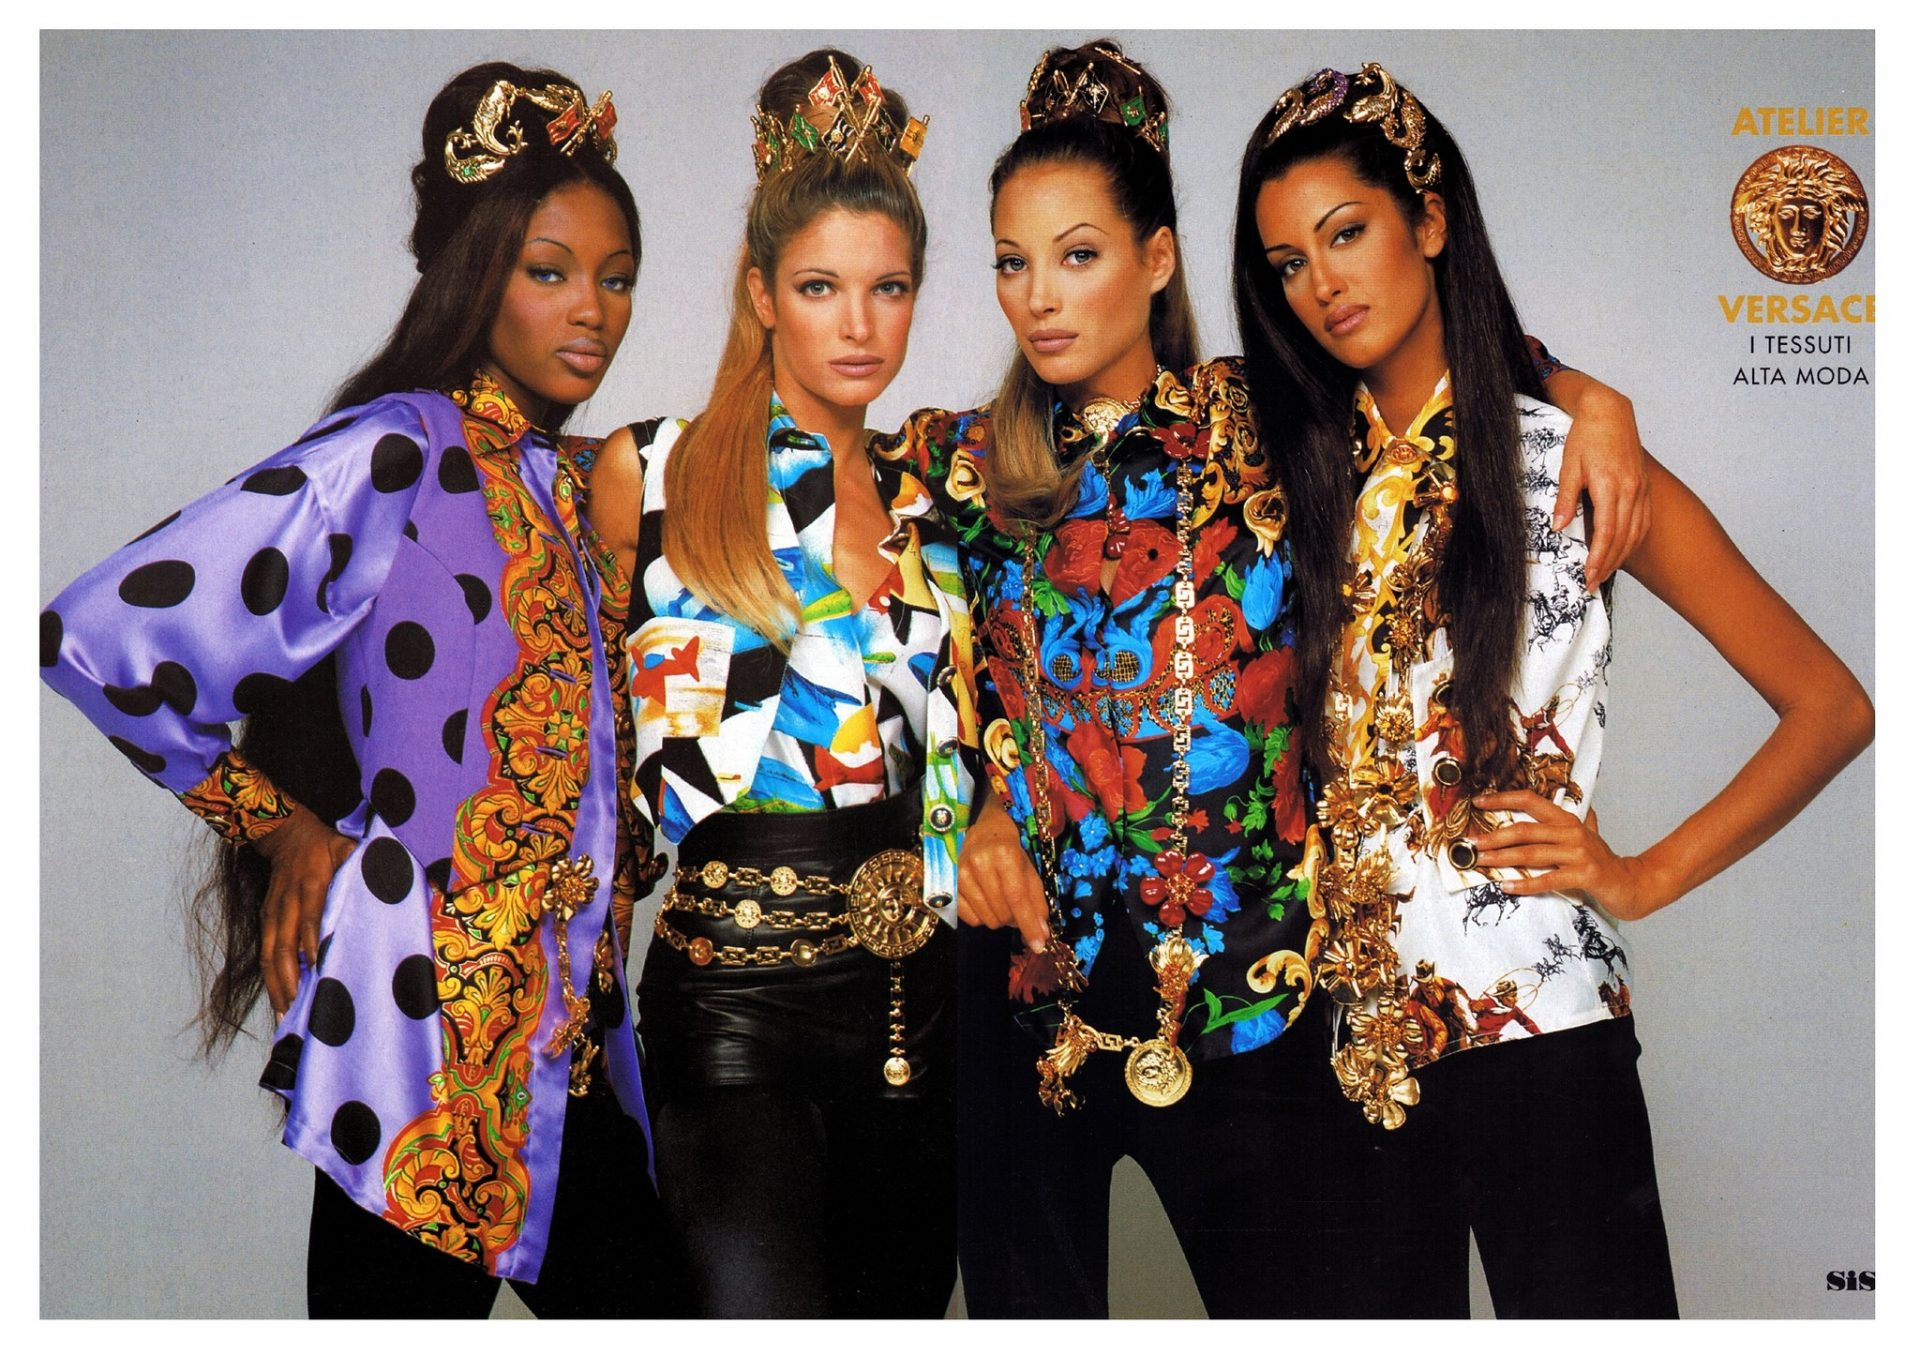 Versace Supermodels in the 1990s